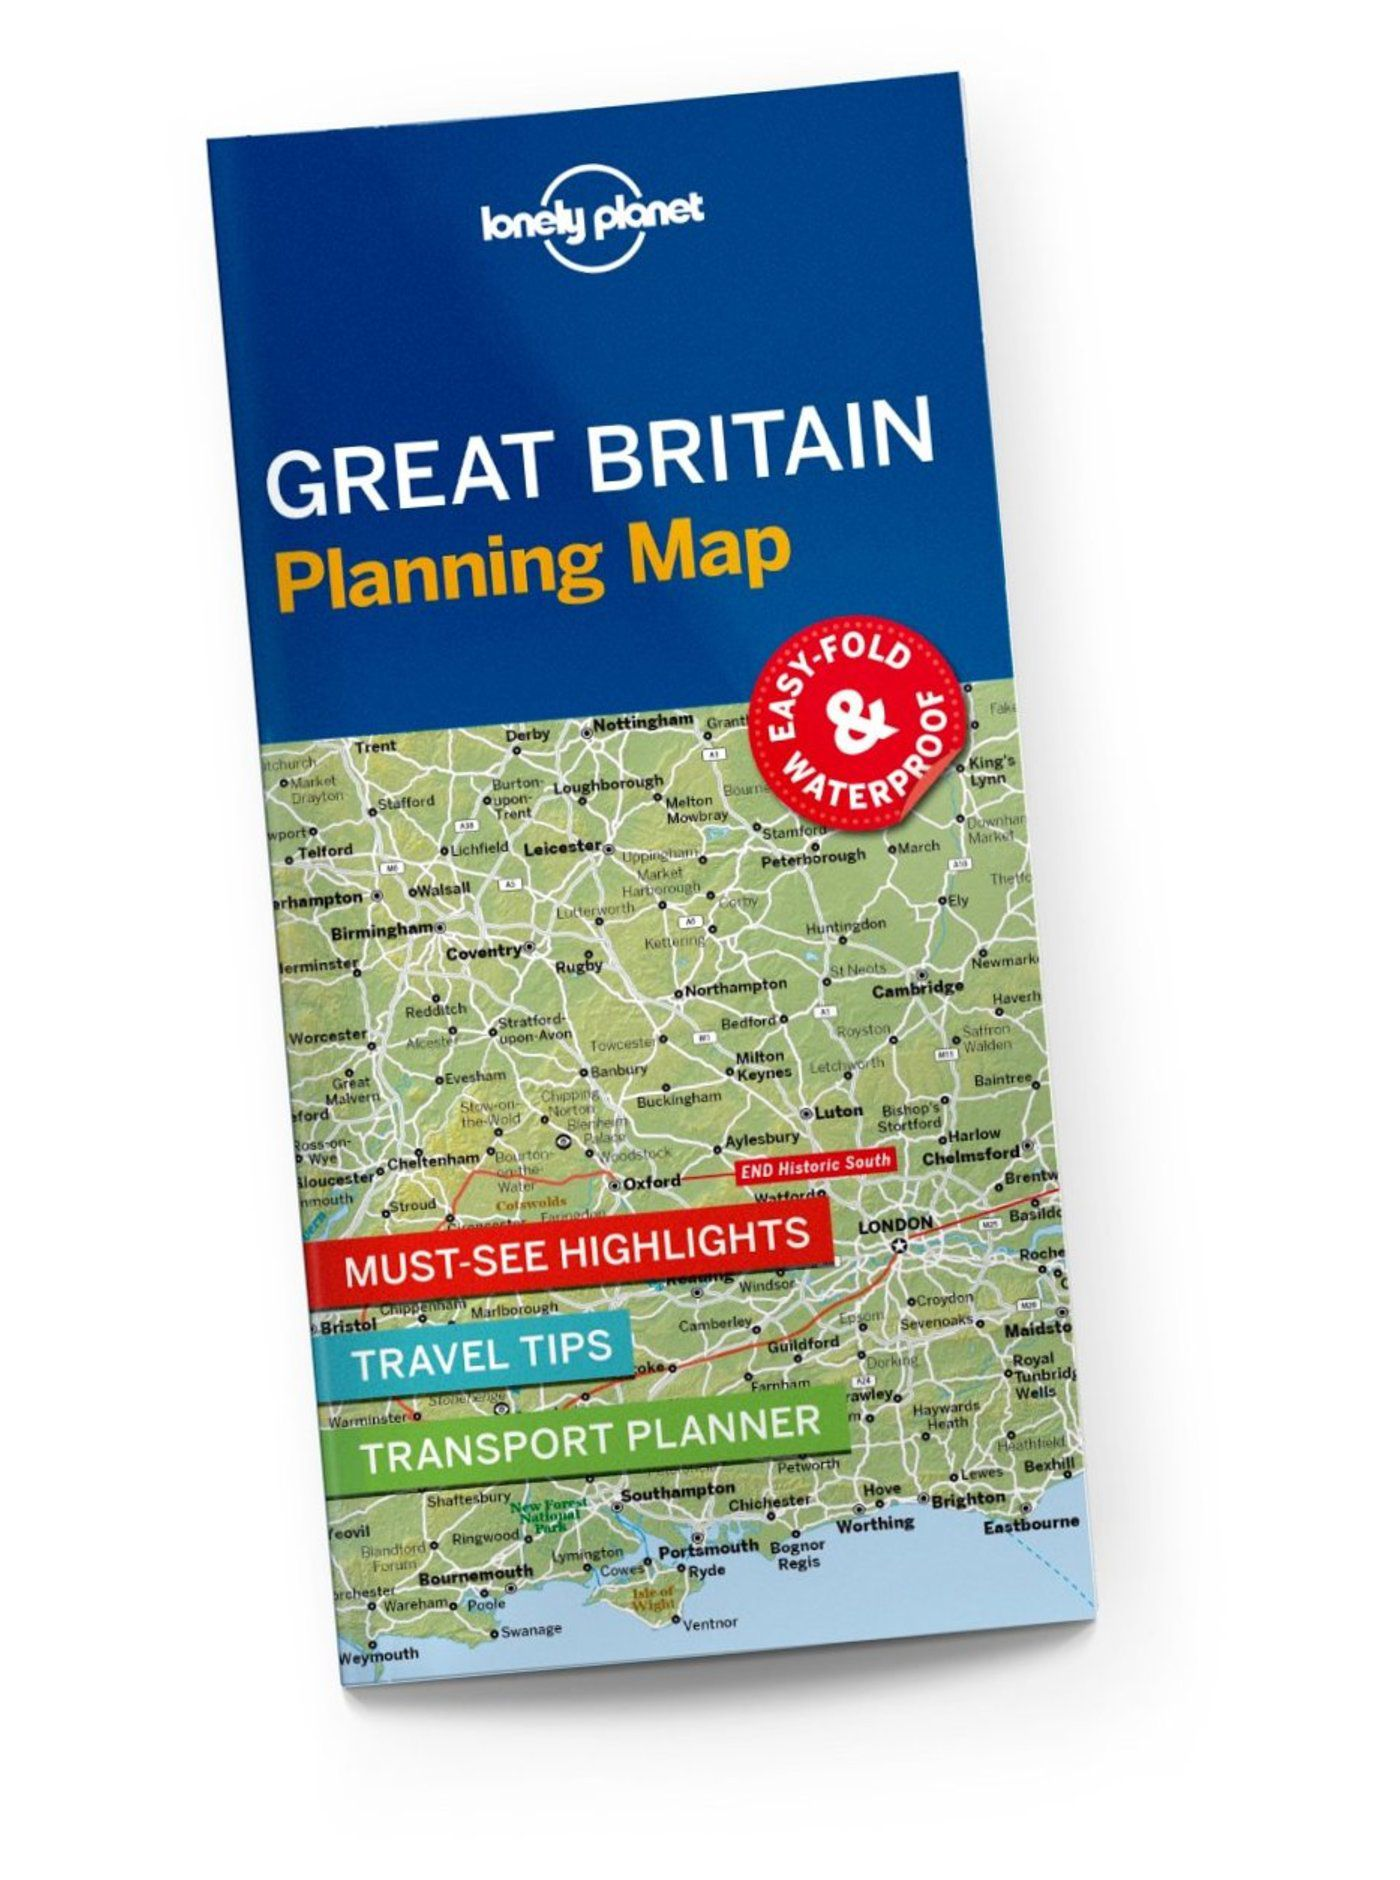 Great Britain Planning Map - Lonely Planet Shop - Lonely Planet US